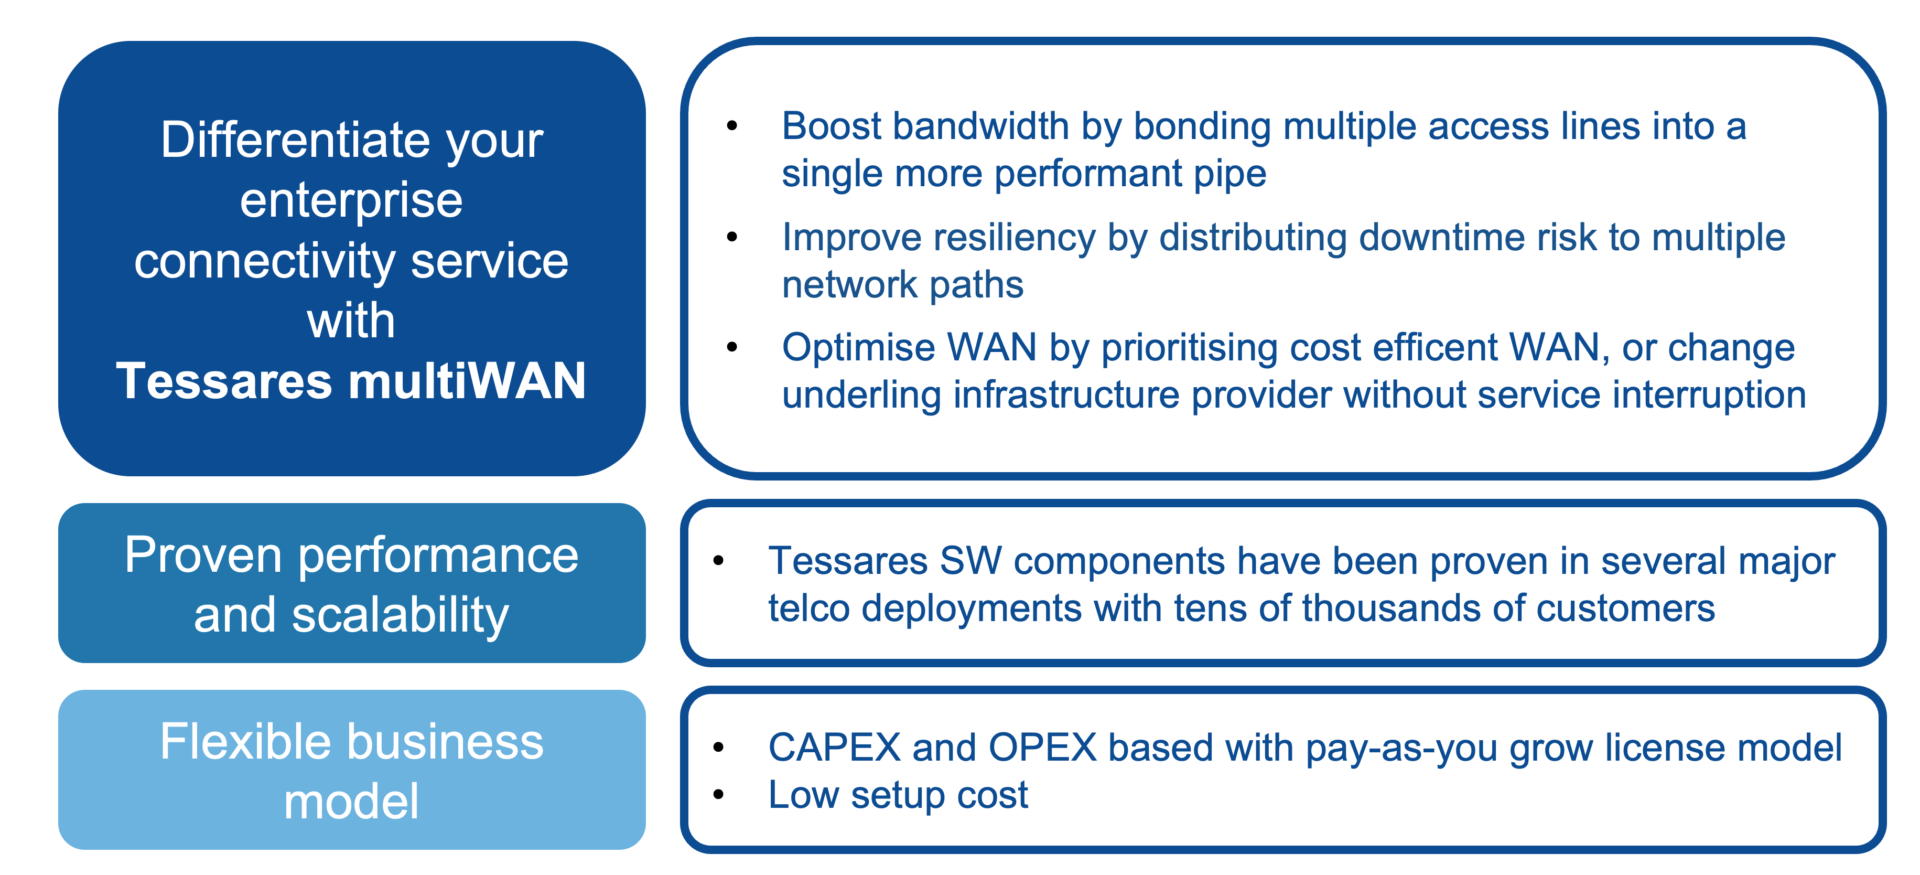 Benefits of MultiWAN: Boost bandwidth, improve resiliency and prioritise the most cost efficient networks.